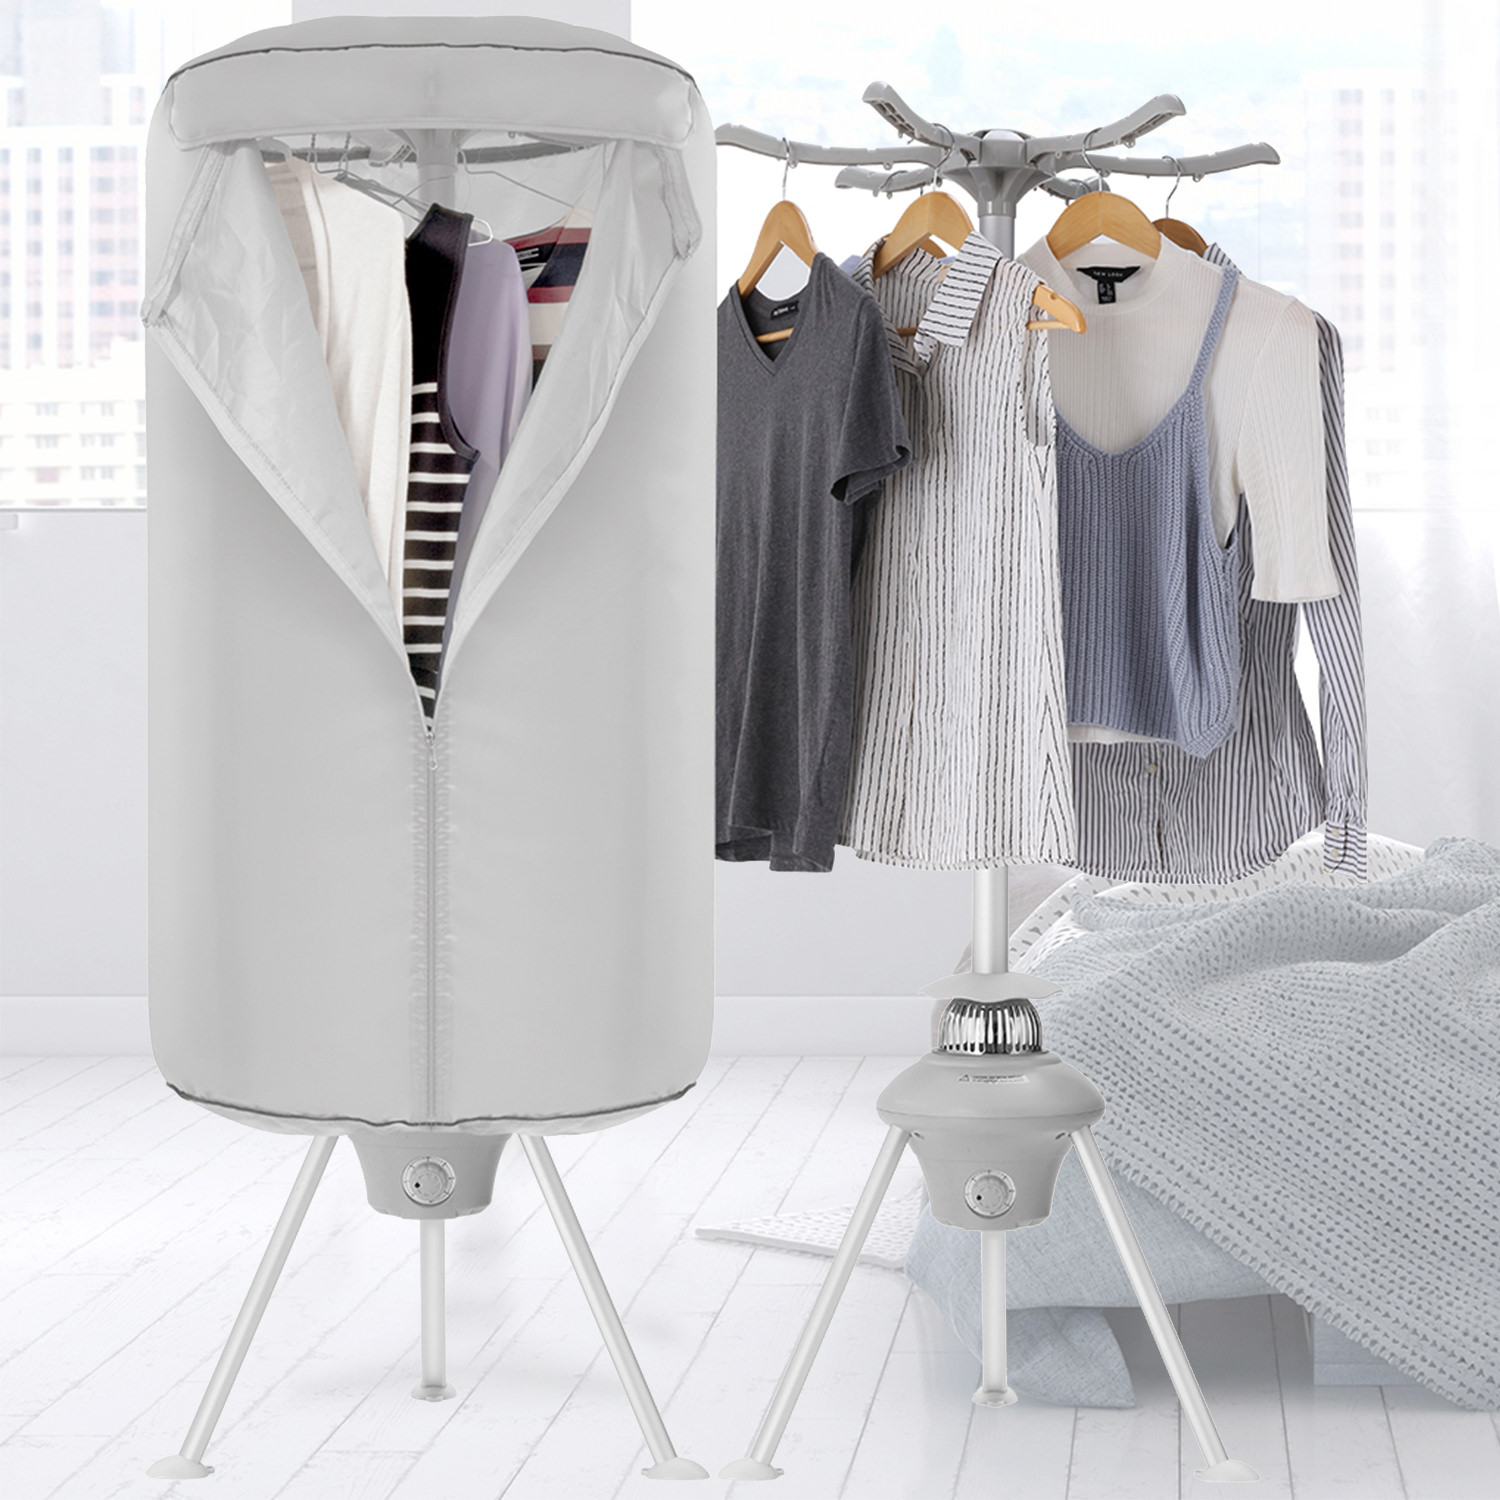 Portable Clothes Dryer 1000W Electric Laundry Drying Rack Capacity Folding Dryer Quick Dry & Efficient Mode Digital Automatic Timer with Remote Control